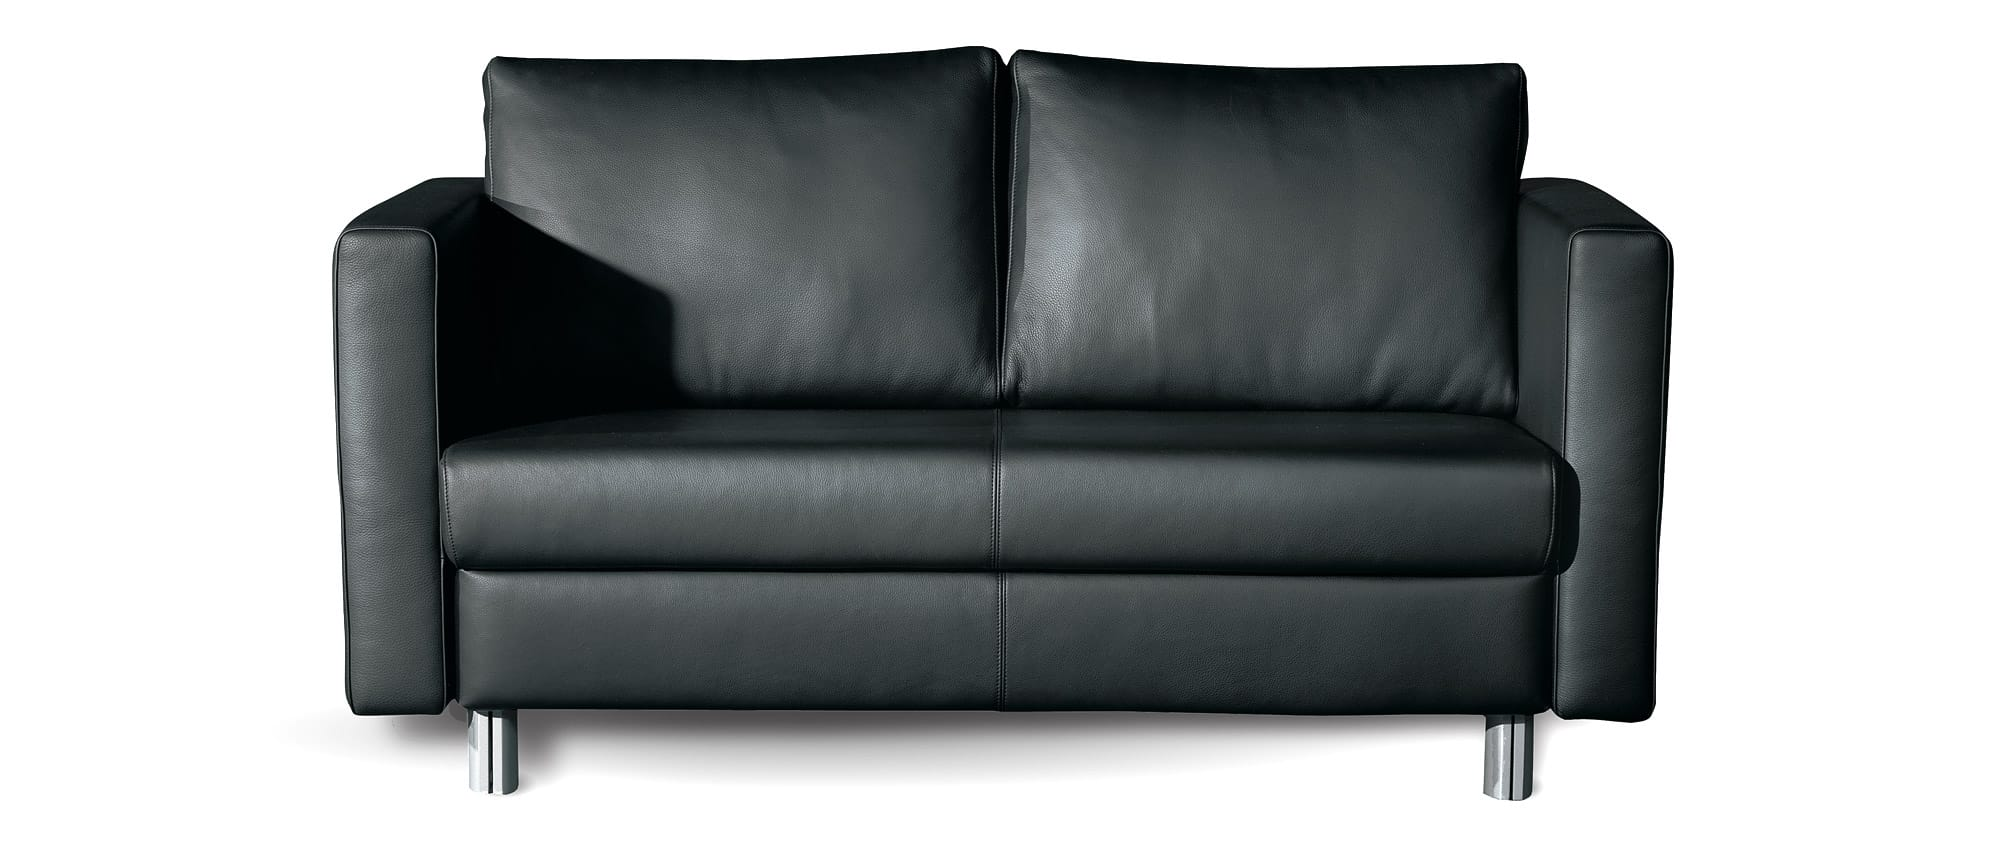 franz fertig vip schlafsofa in echtleder. Black Bedroom Furniture Sets. Home Design Ideas